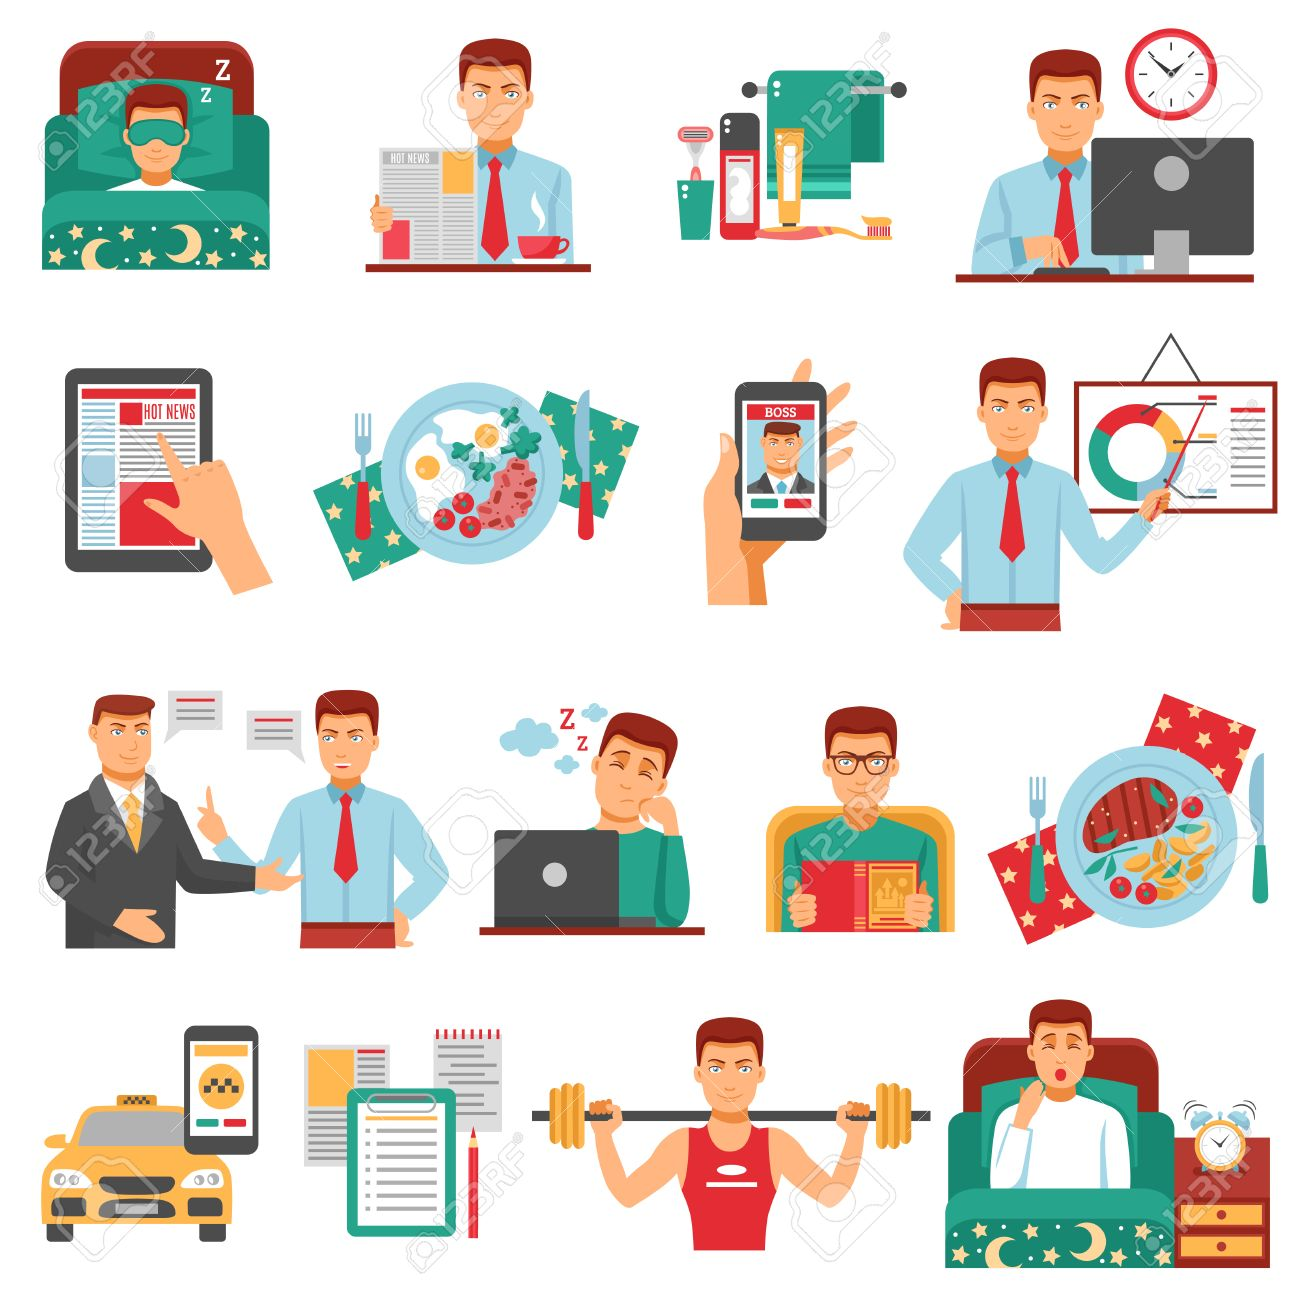 man daily routine icon set with a busy man during the day dream